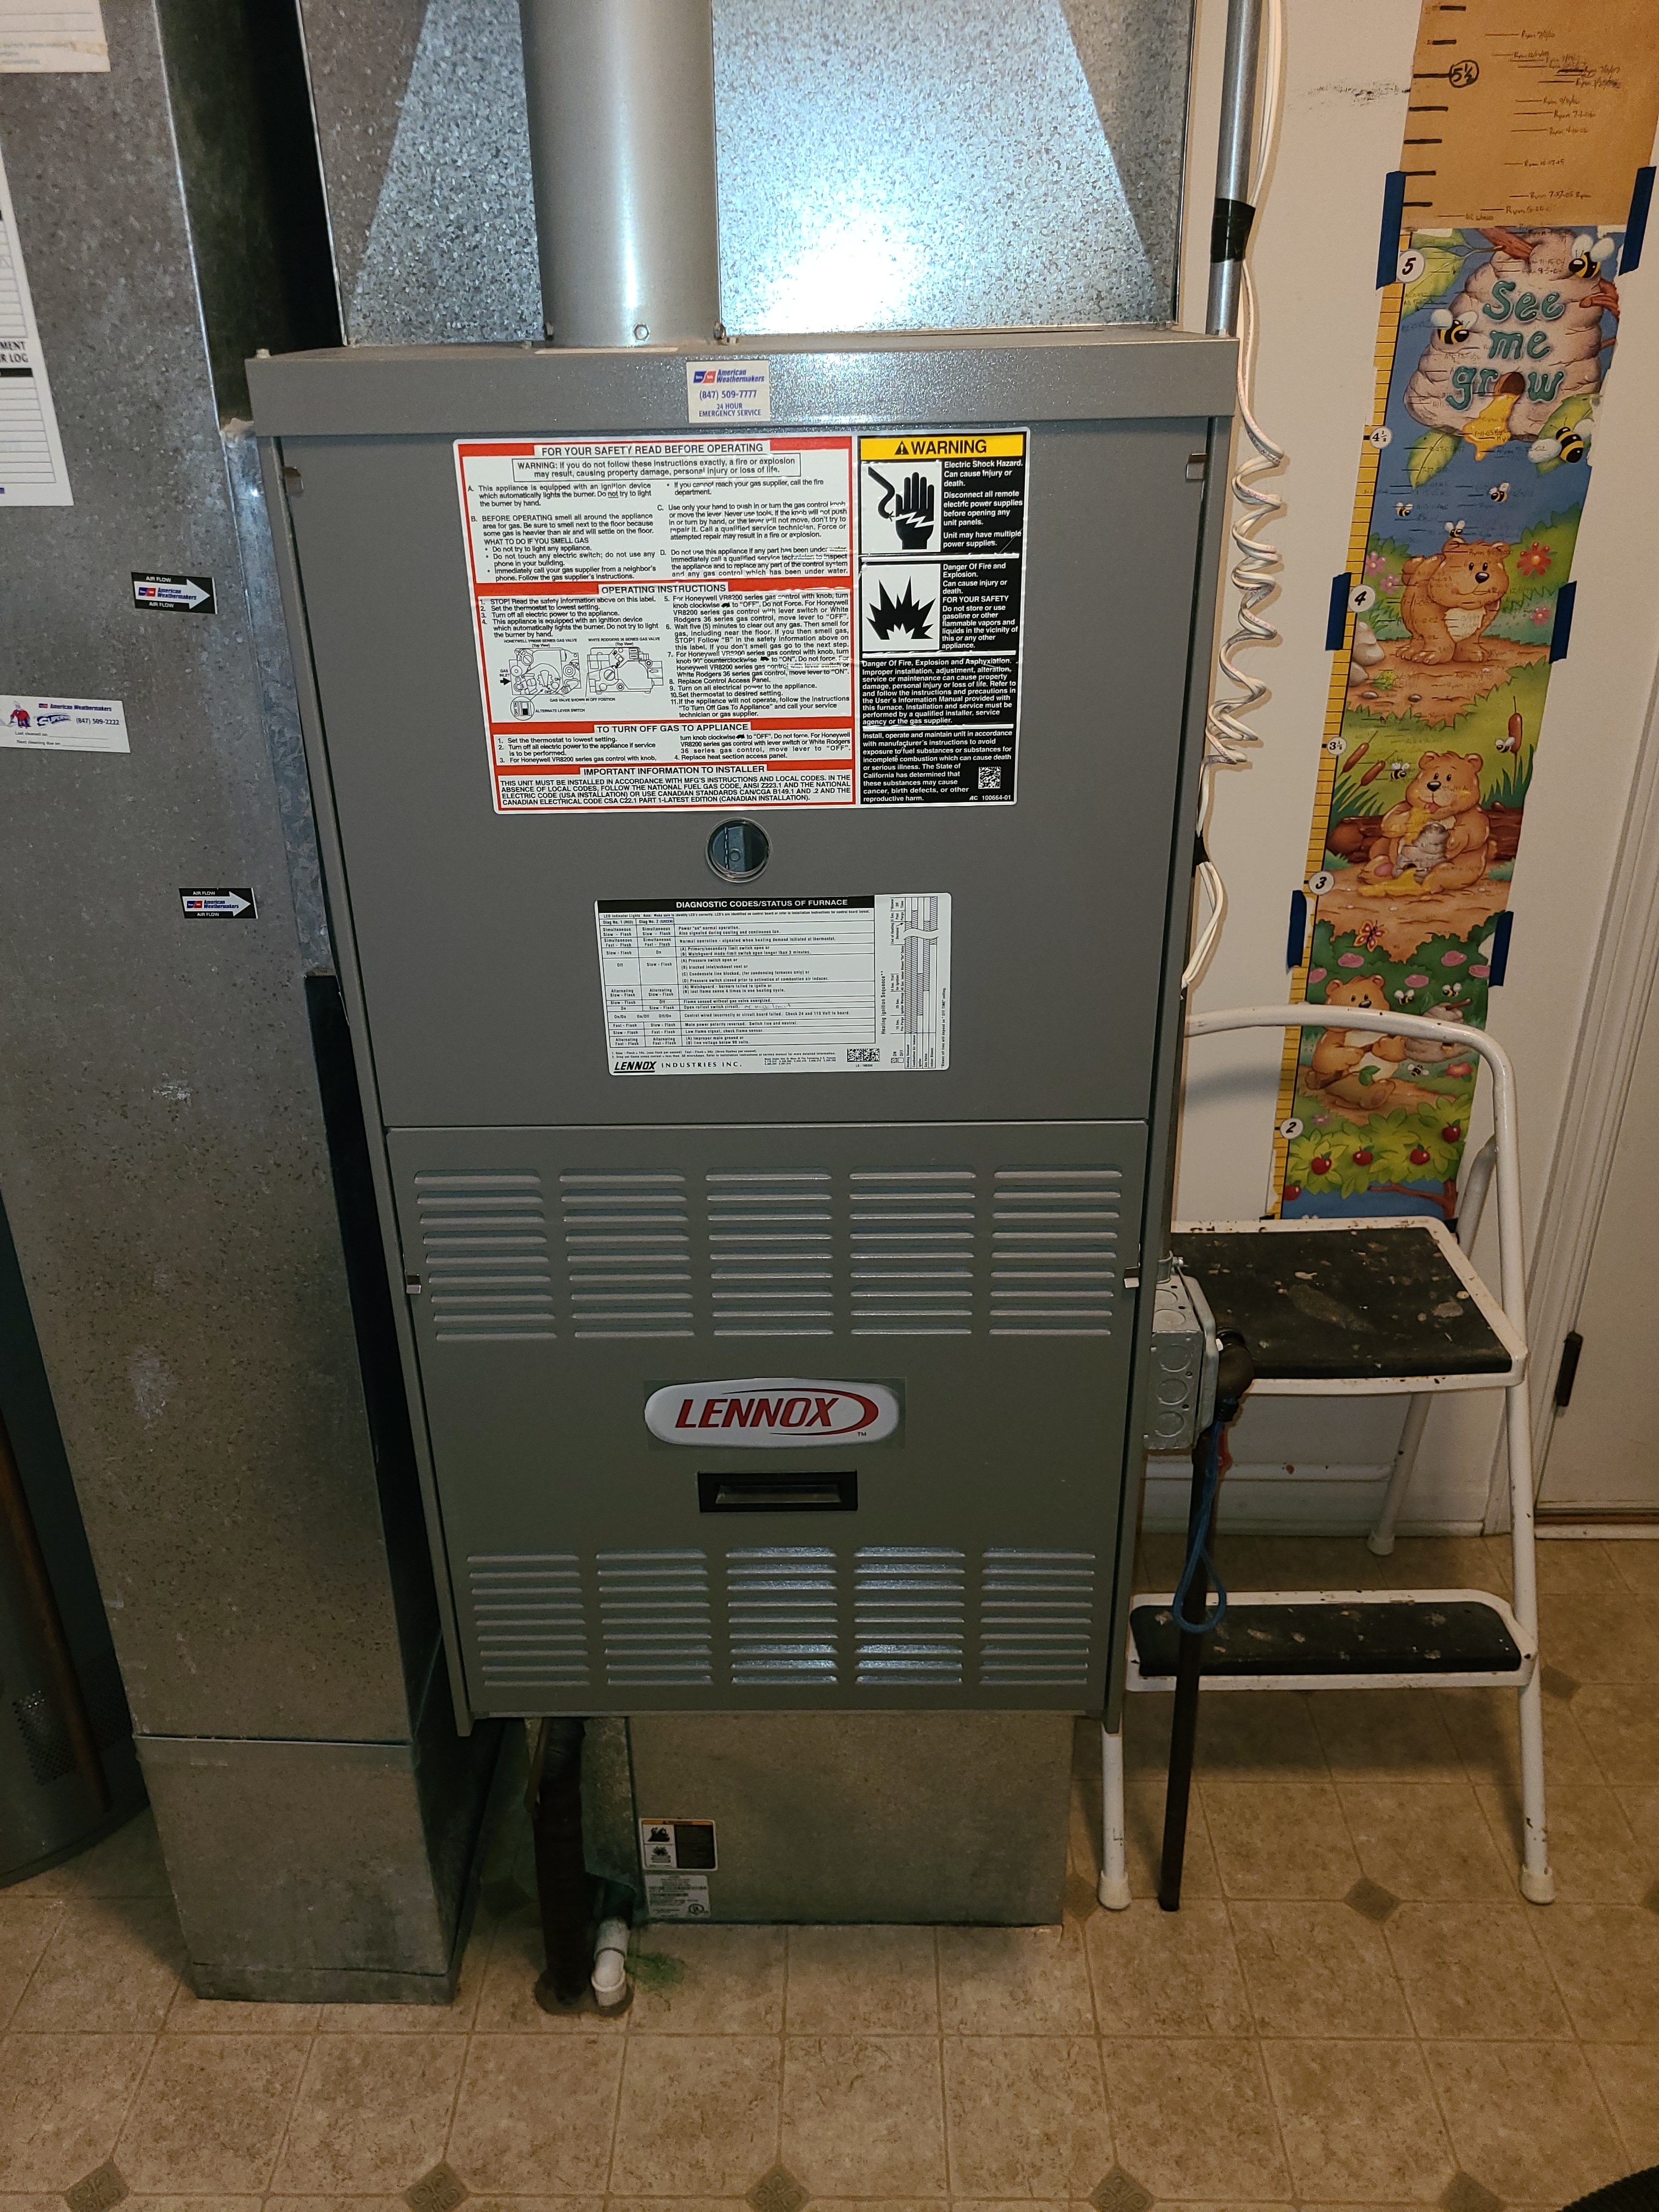 Keep your Lennox running right with a maintenance by American Weathermakers.